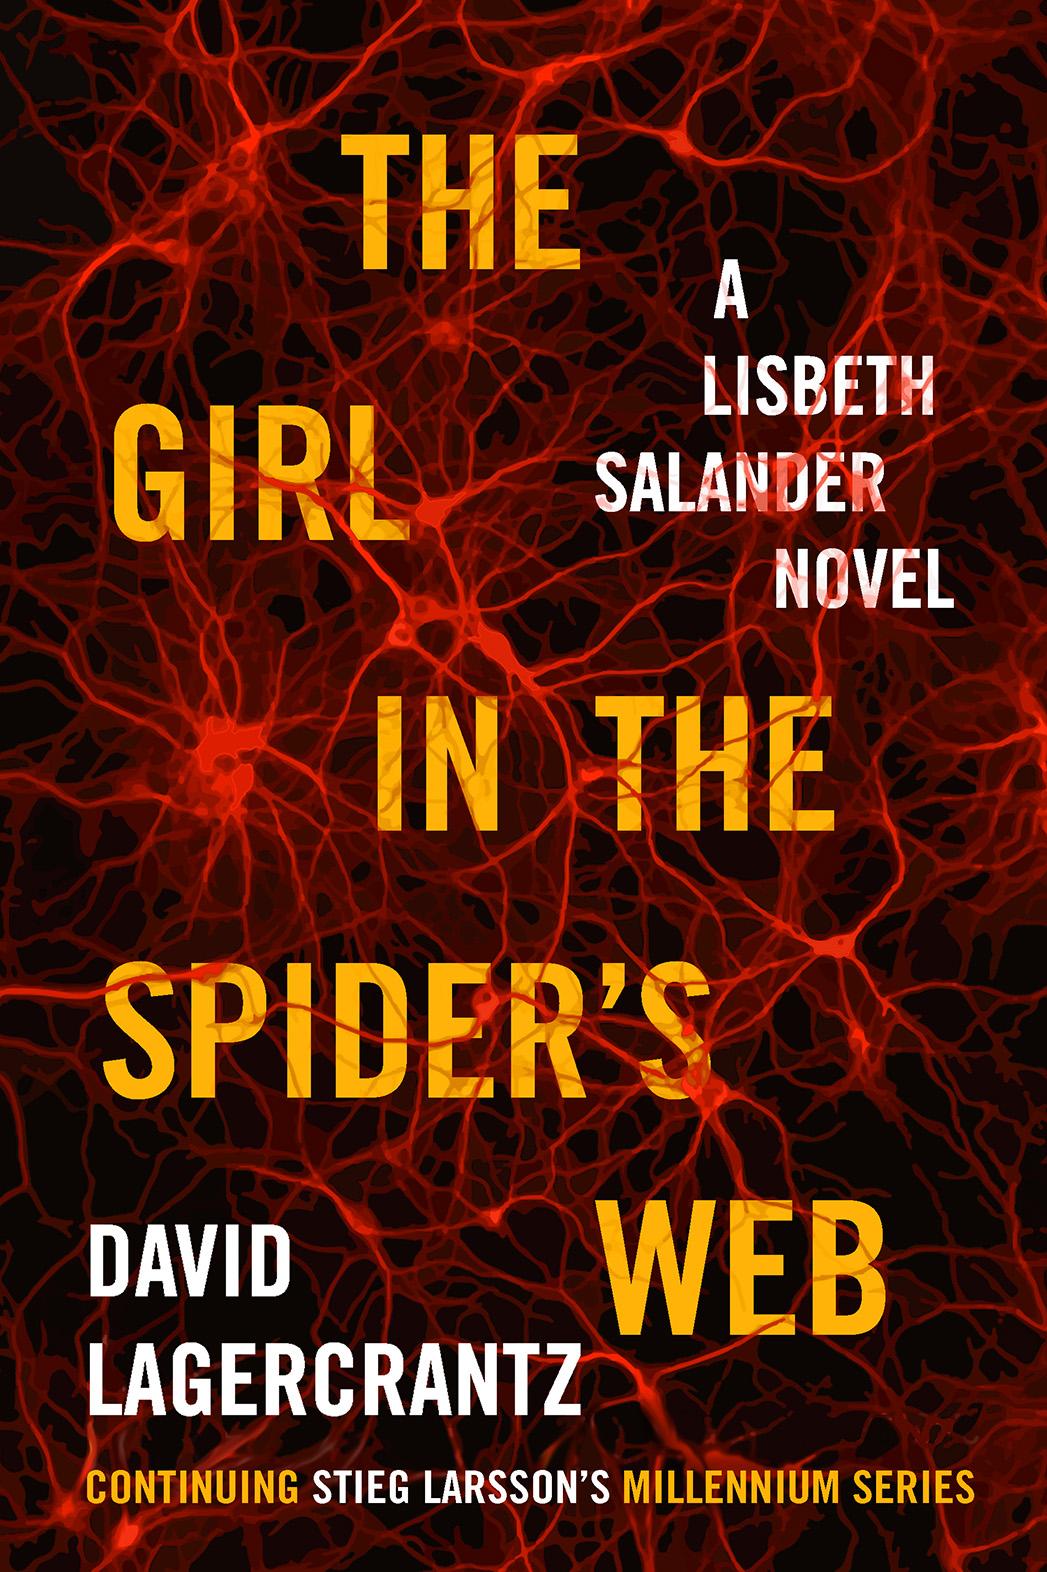 The Girl in the Spider's Web - H 2015